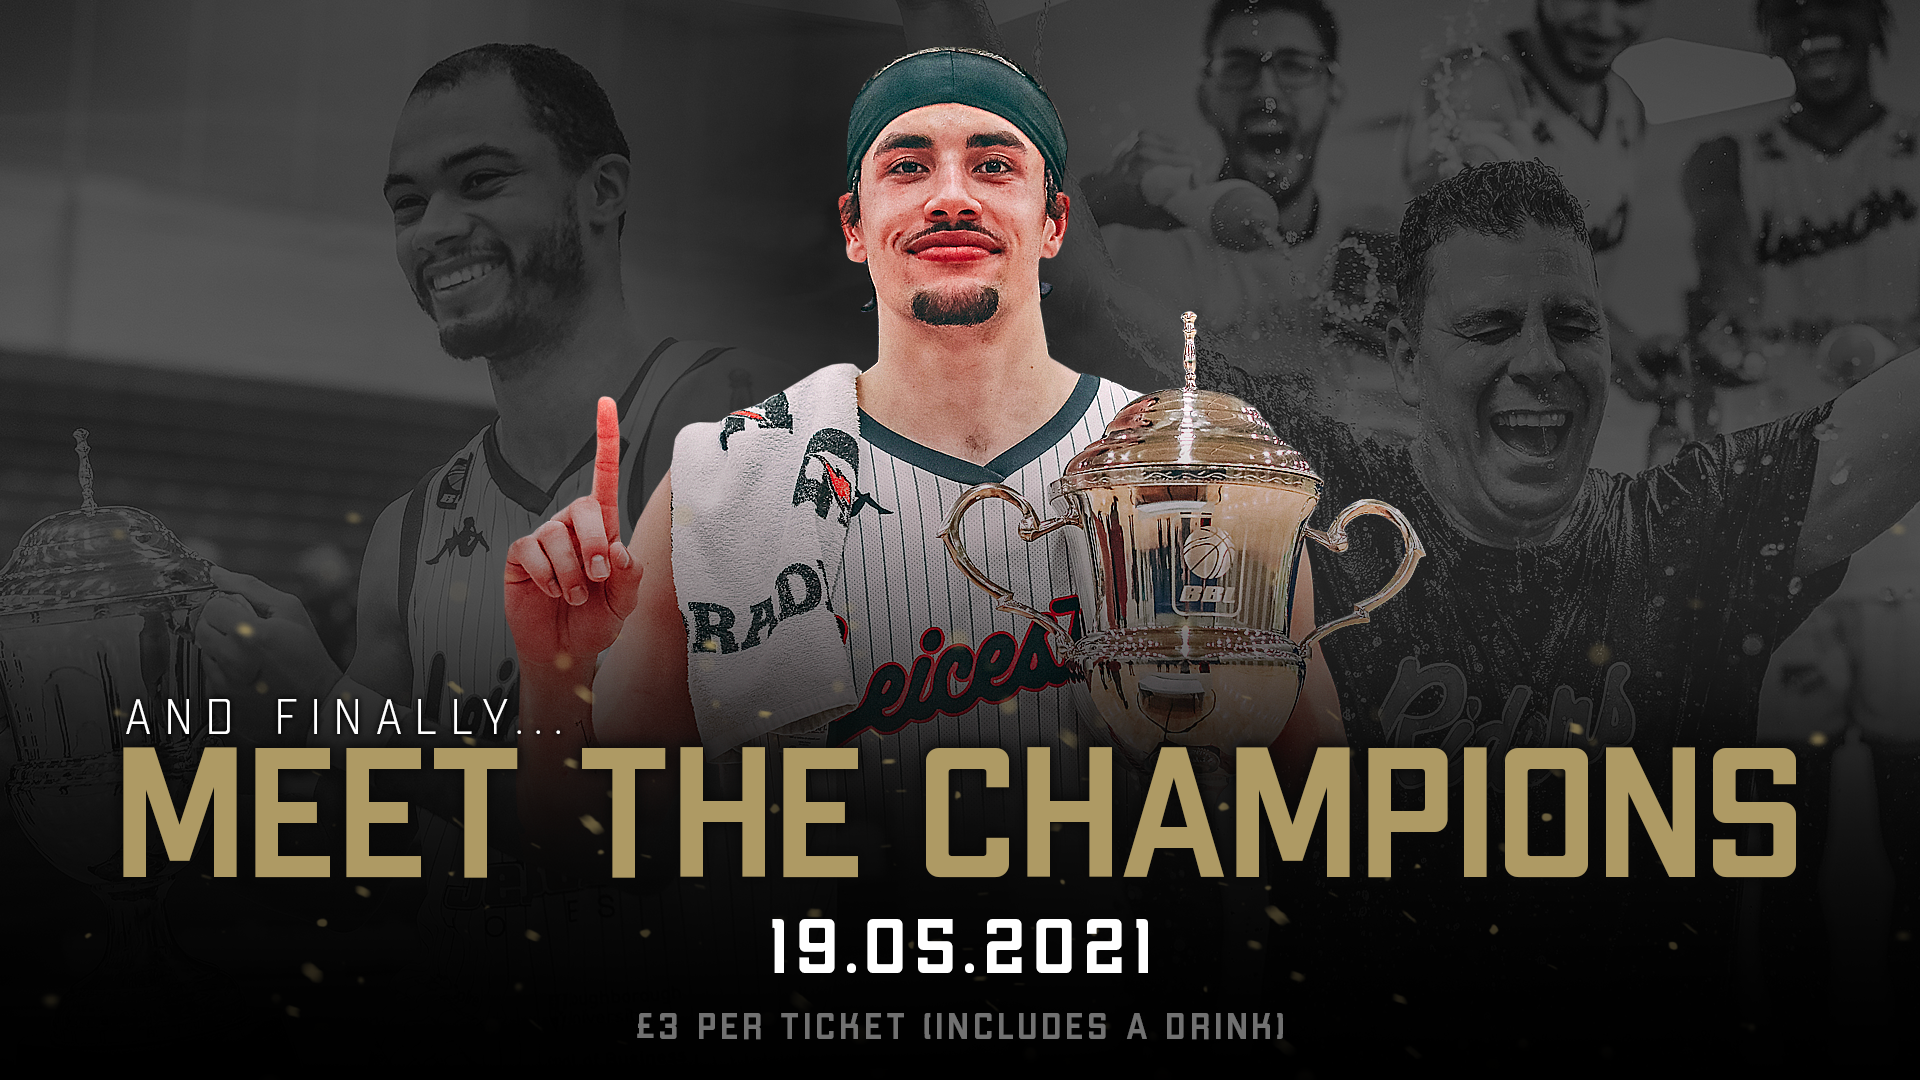 And finally… Meet the Champions